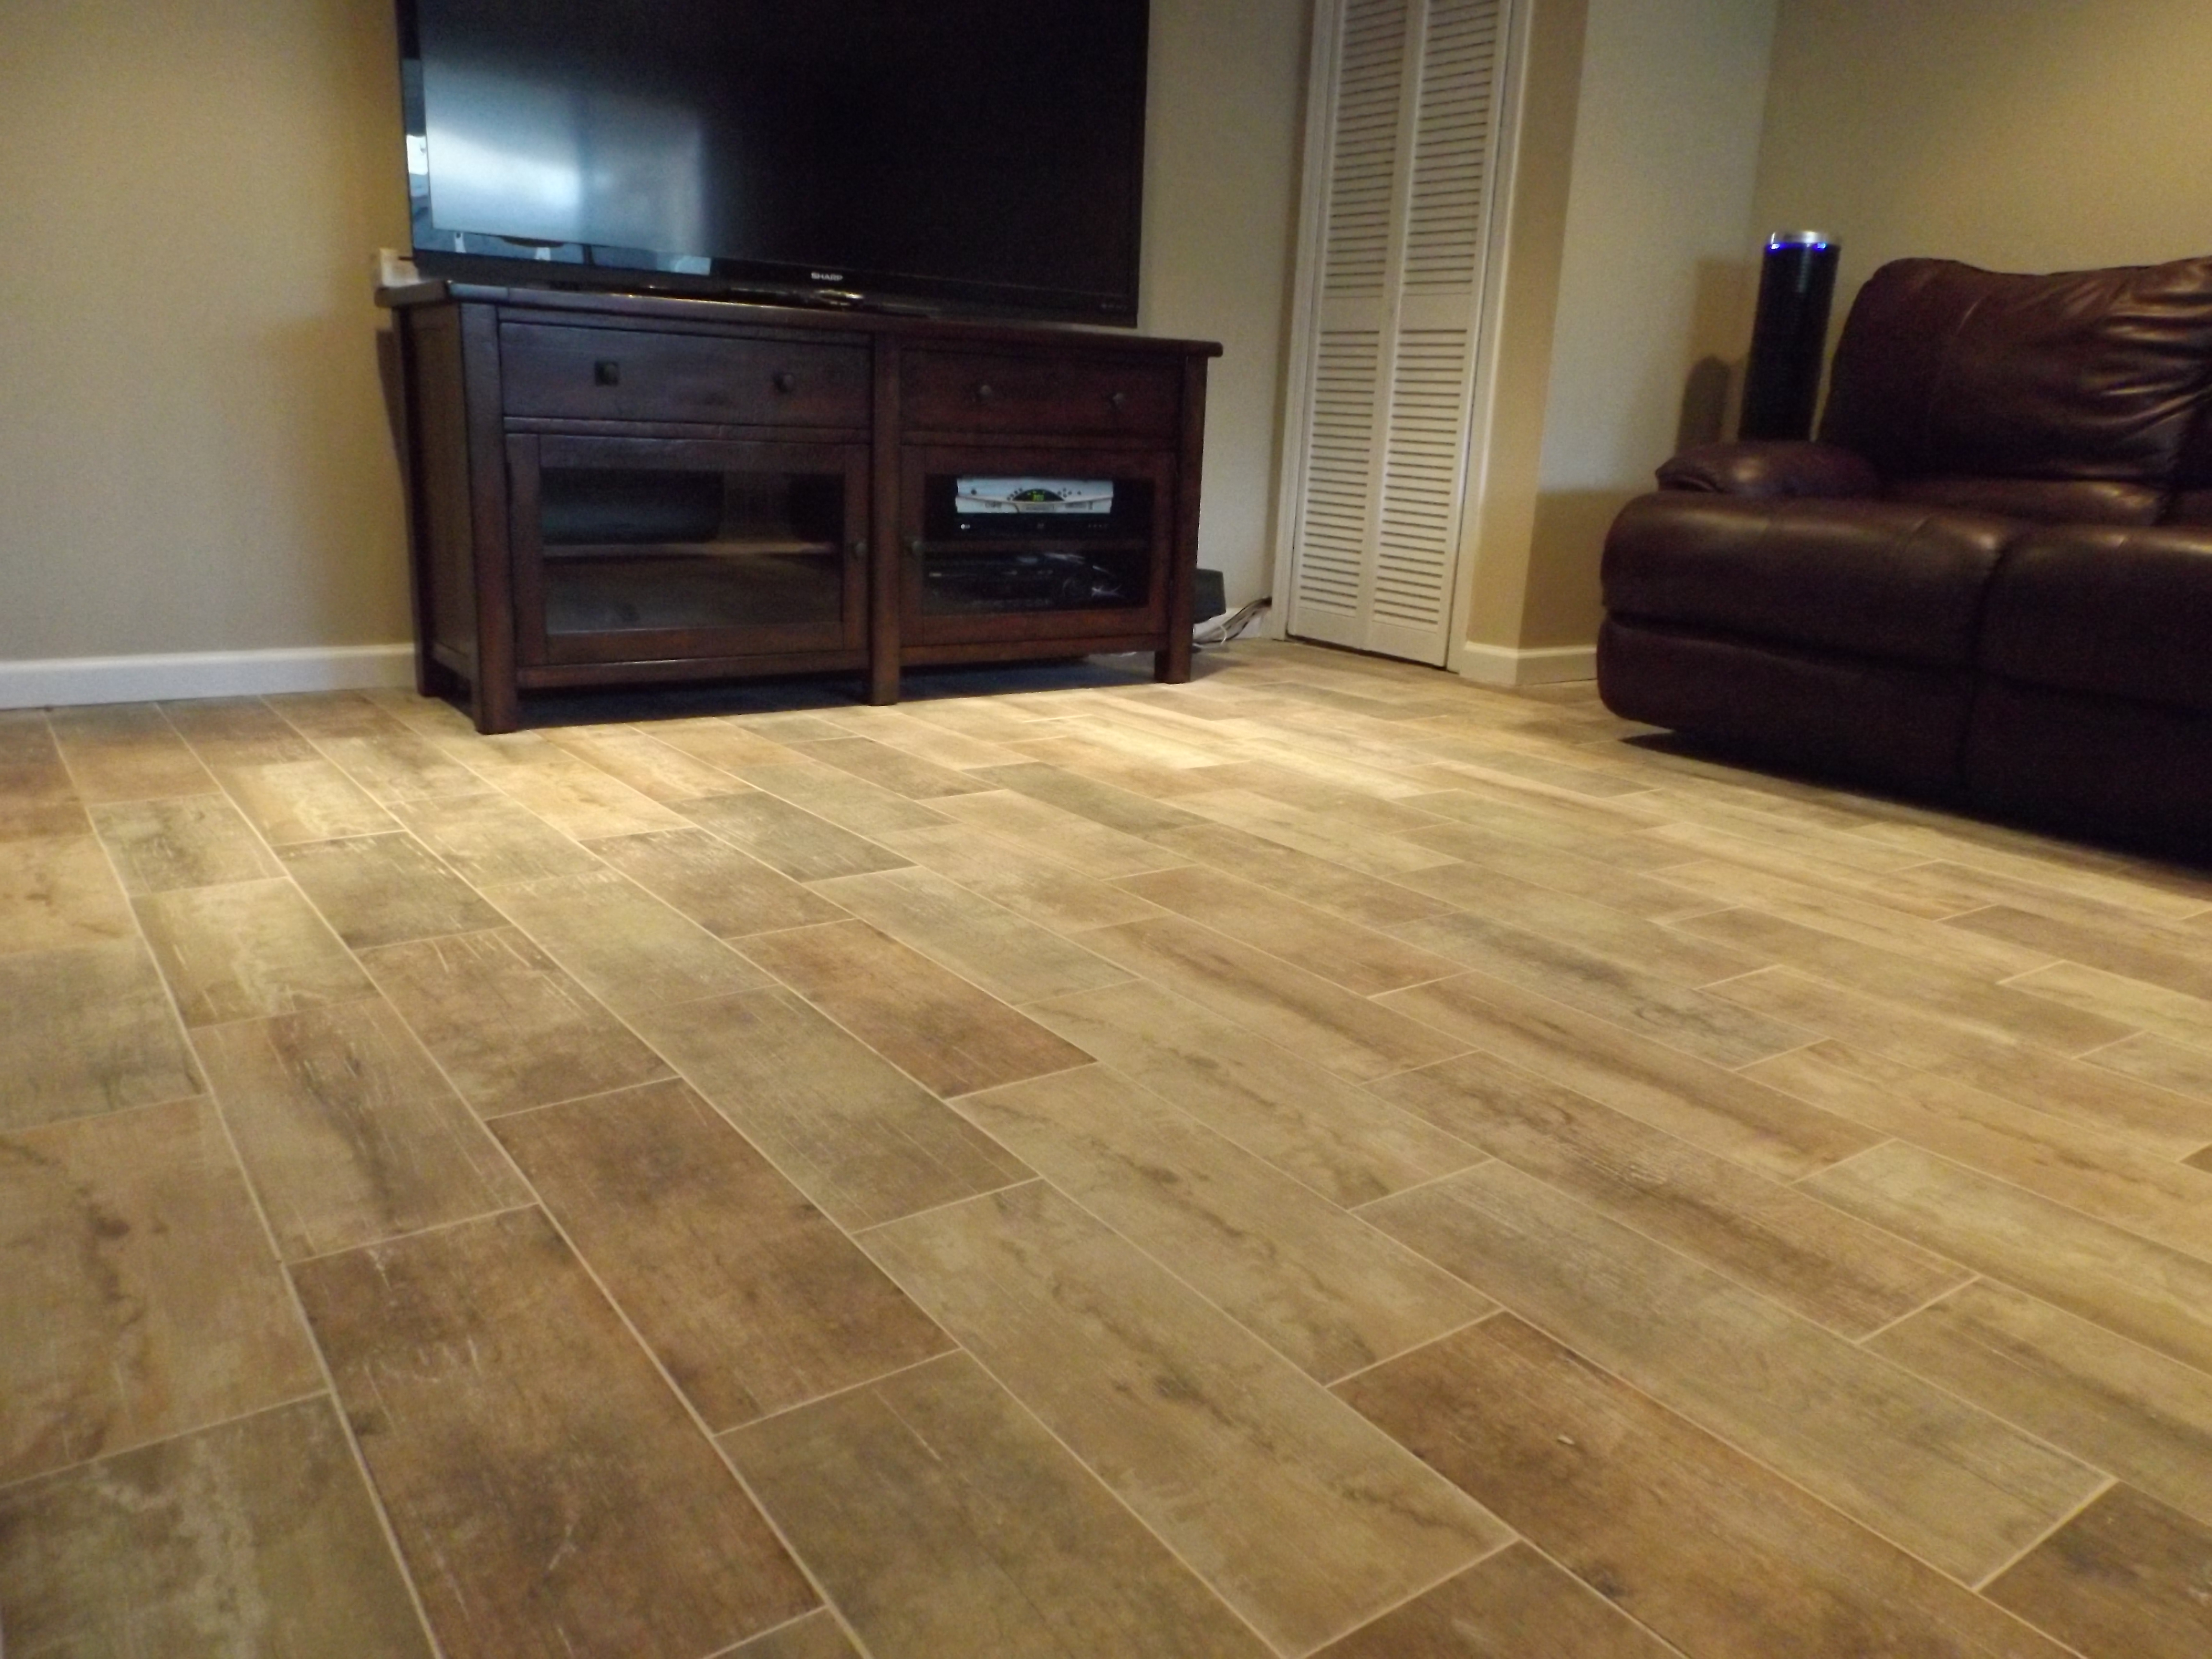 5 Reasons Wood Look Tile Beats Hardwood Flooring